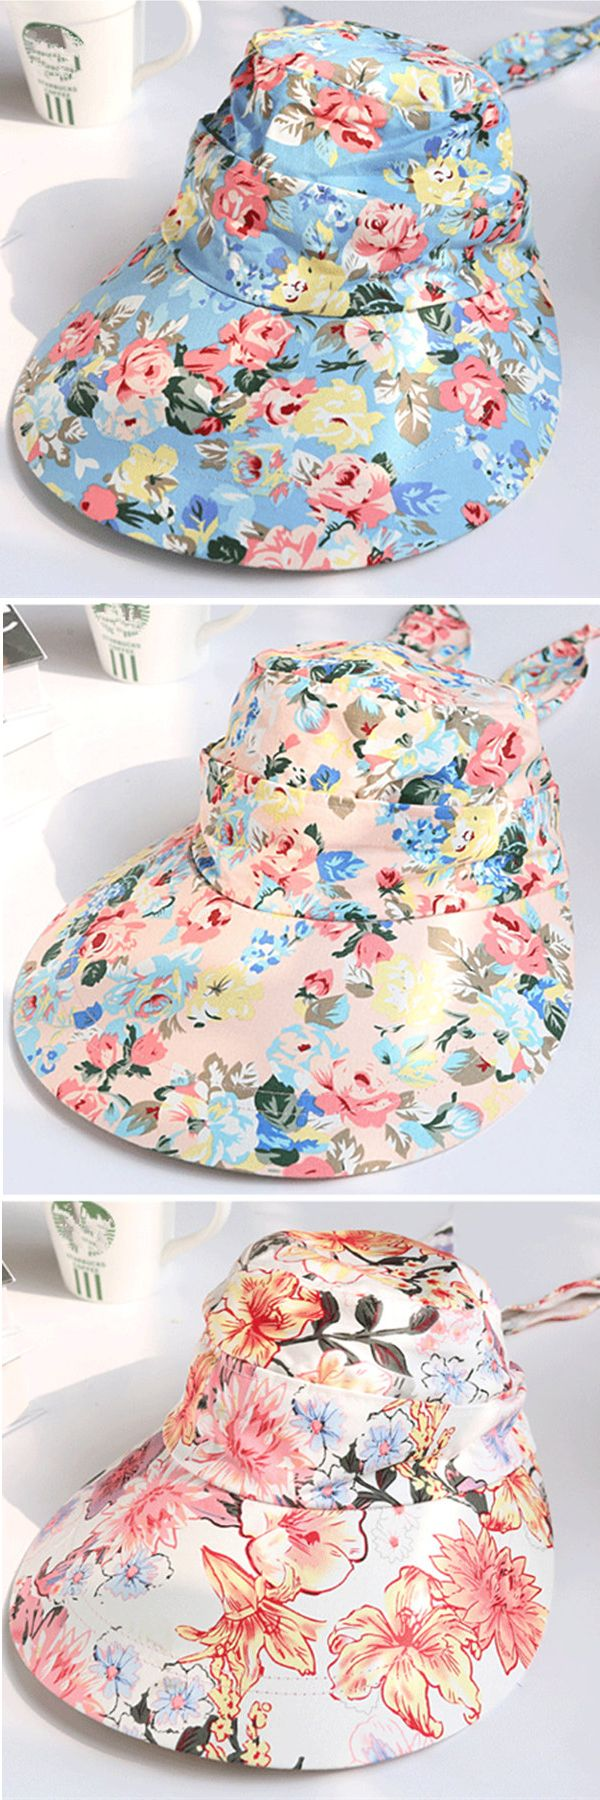 Women Summer UV Protection Floral Gardening Detachable Hat Beach Outdoor Sunscreen Visor Sun Cap